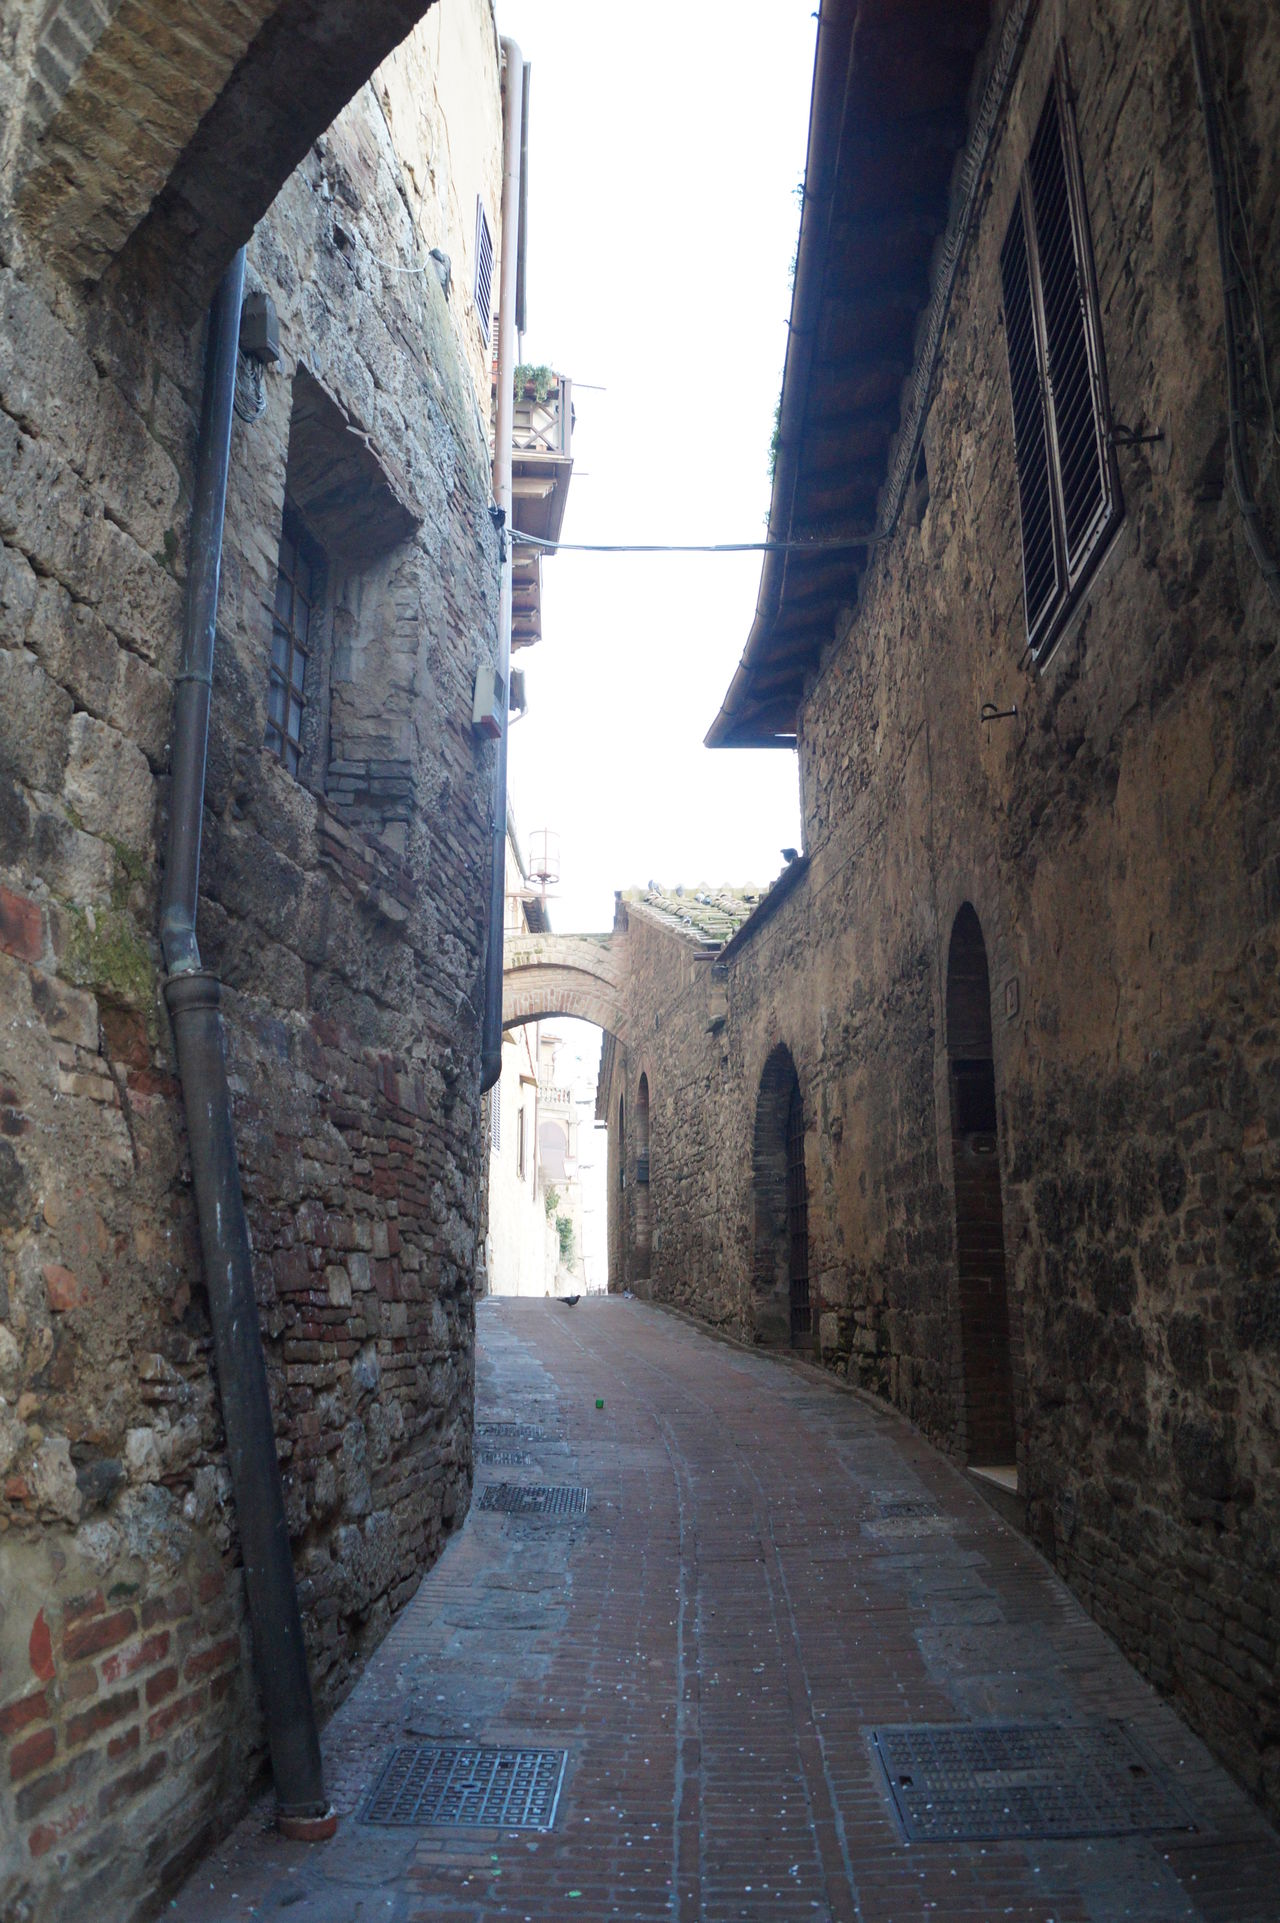 Architecture Building Exterior Built Structure Day History Italia No People Outdoors Sky The Way Forward Toscana ITALY Vicolo Del Paese